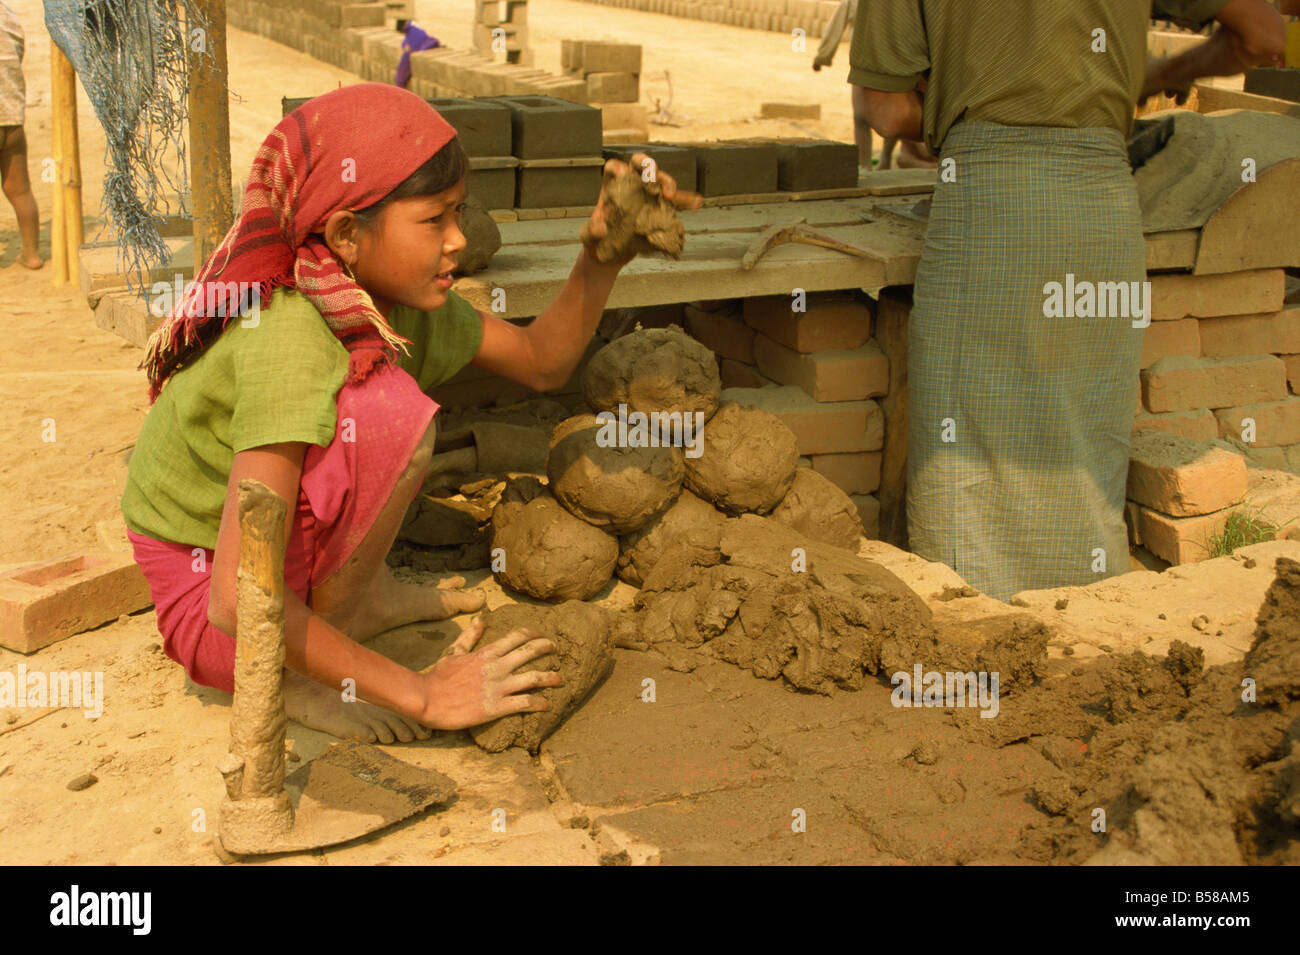 Child labour young girl moulding lumps of clay at brickworks on Mandalay Plains Myanmar Burma Asia - Stock Image